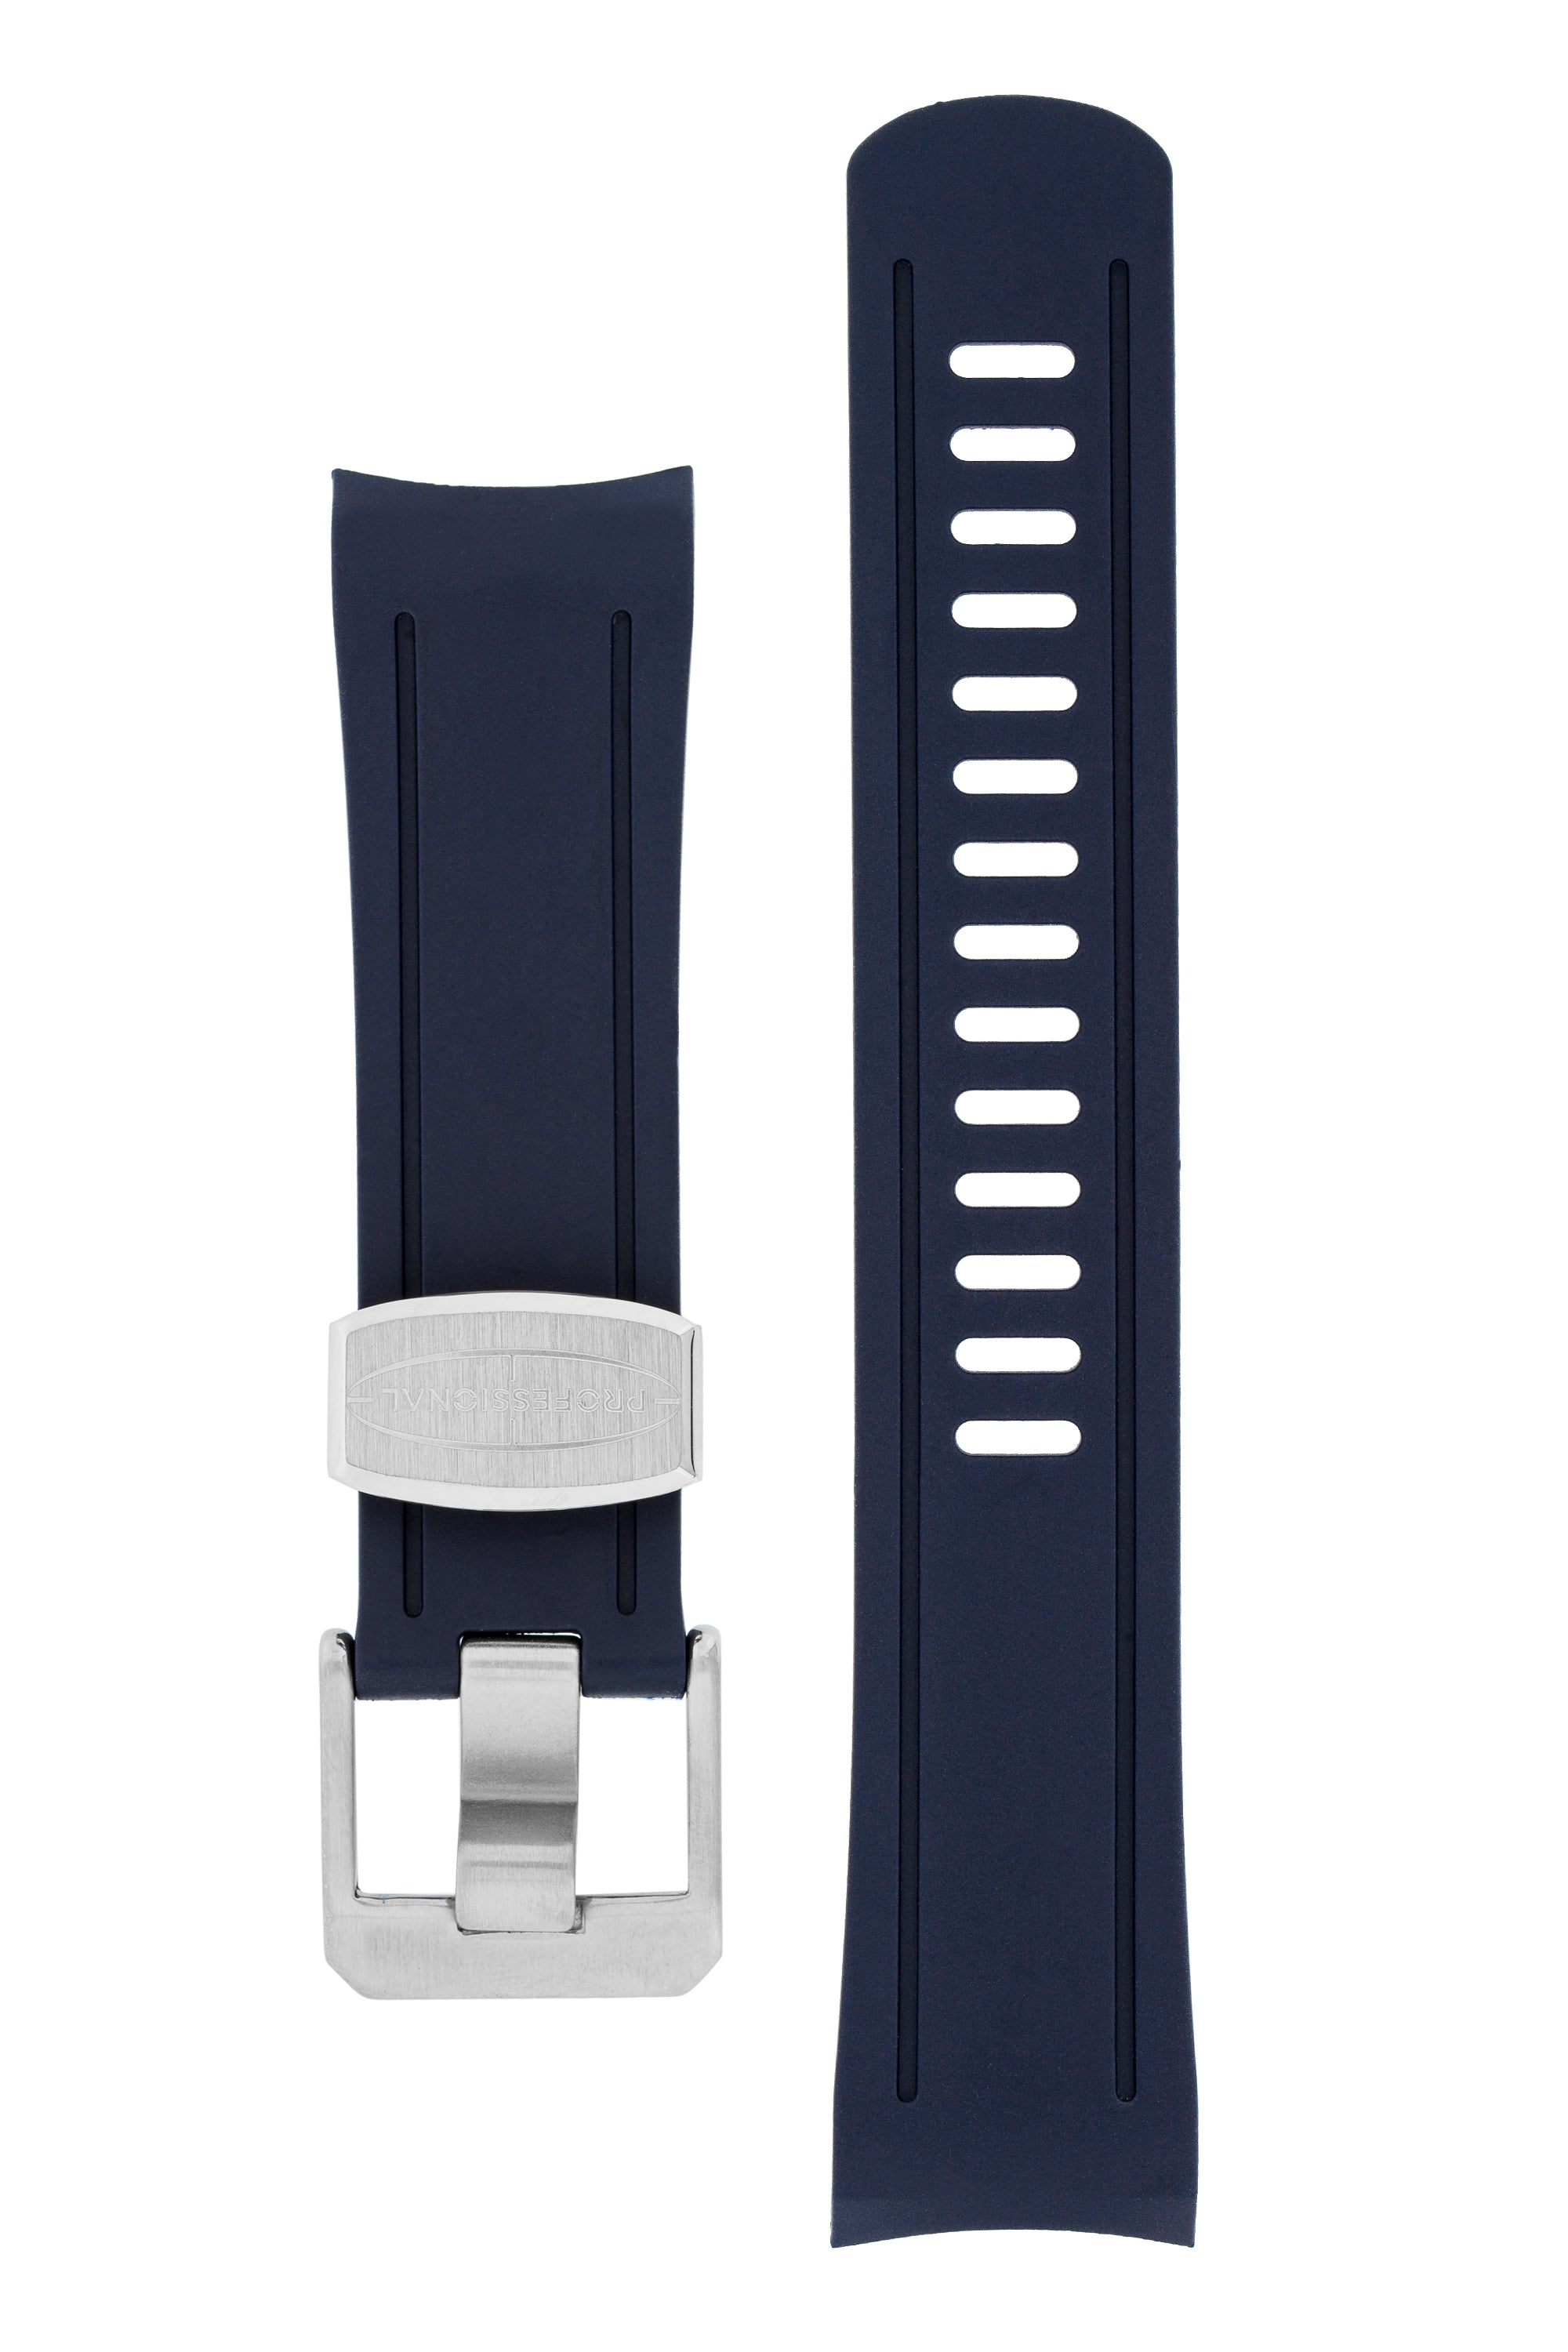 CRAFTER BLUE Rubber Watch Strap for Seiko Shogun Series – NAVY